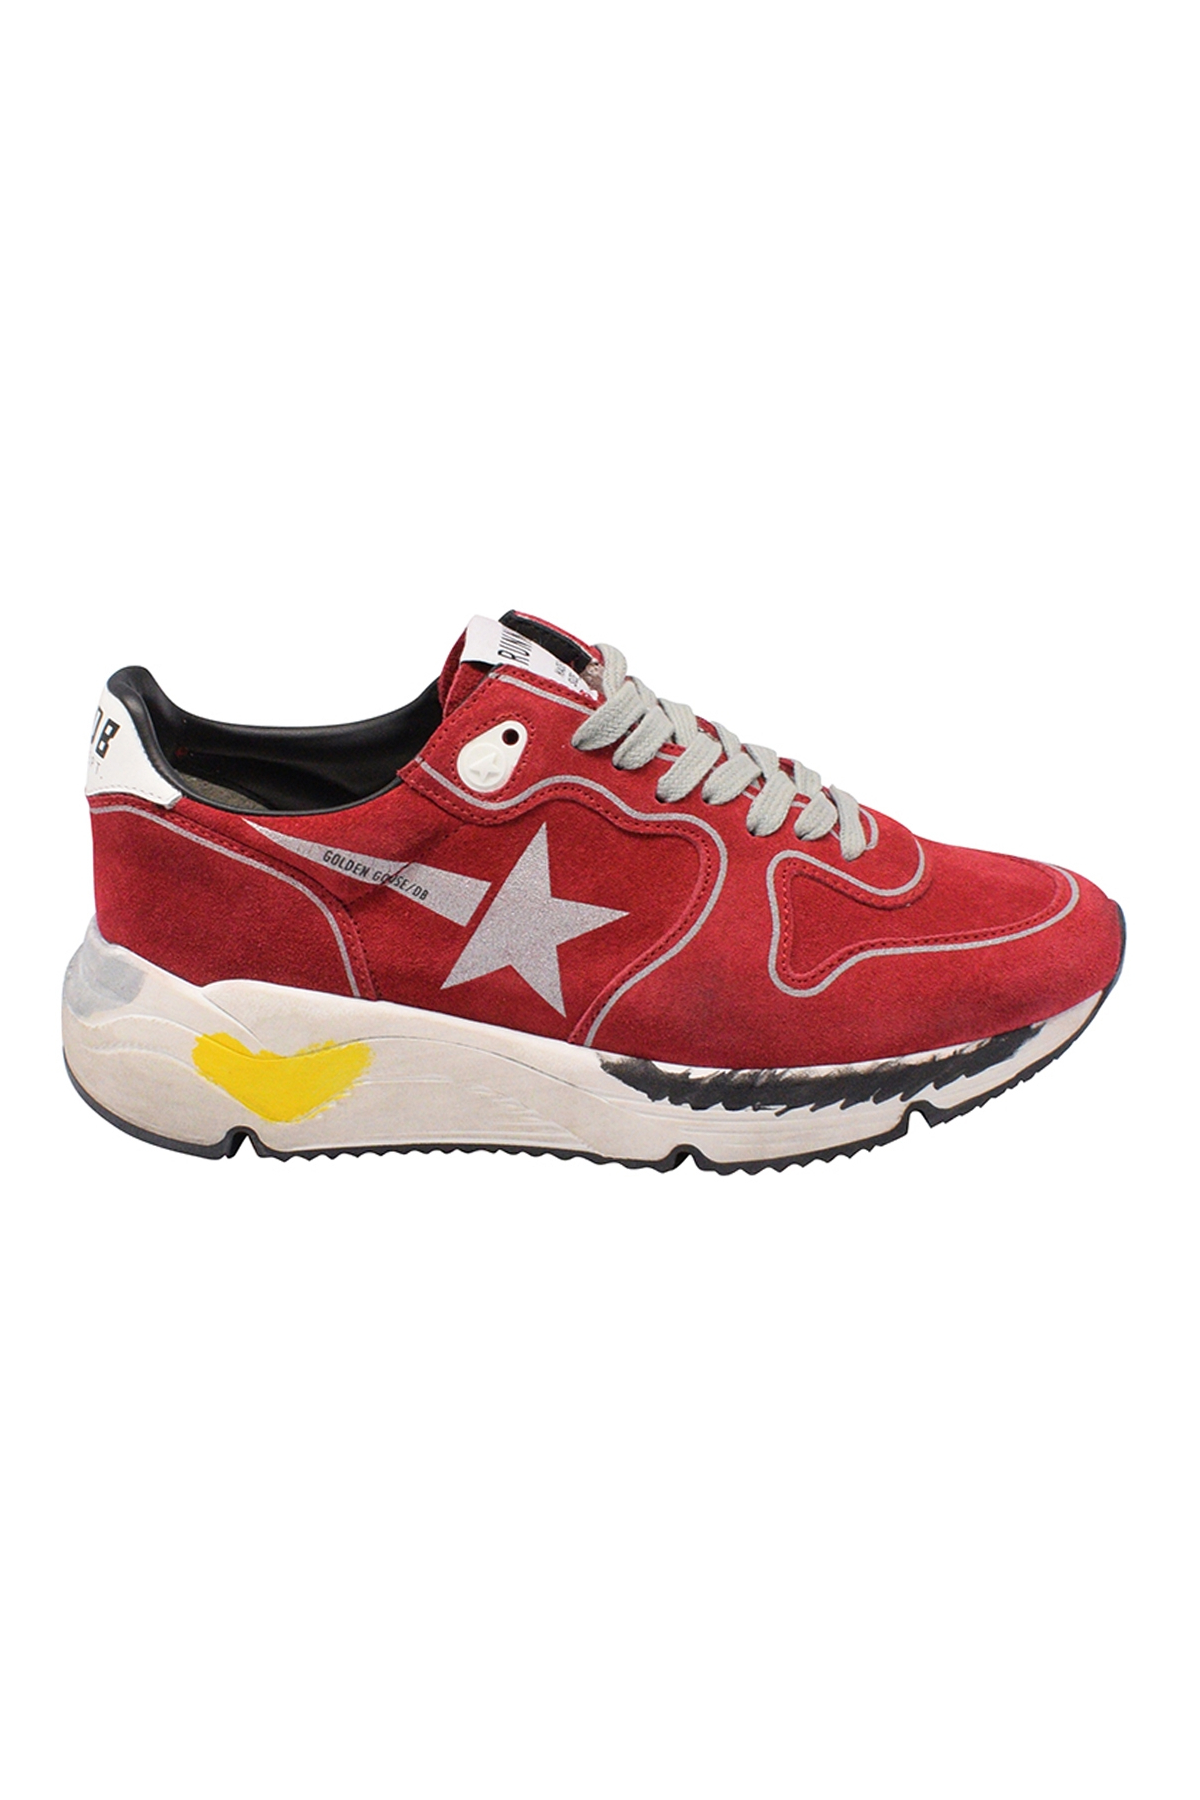 Golden Goose lace-up sneakers in red suede with grey printed star, white leather heel tab and customized rubber sole